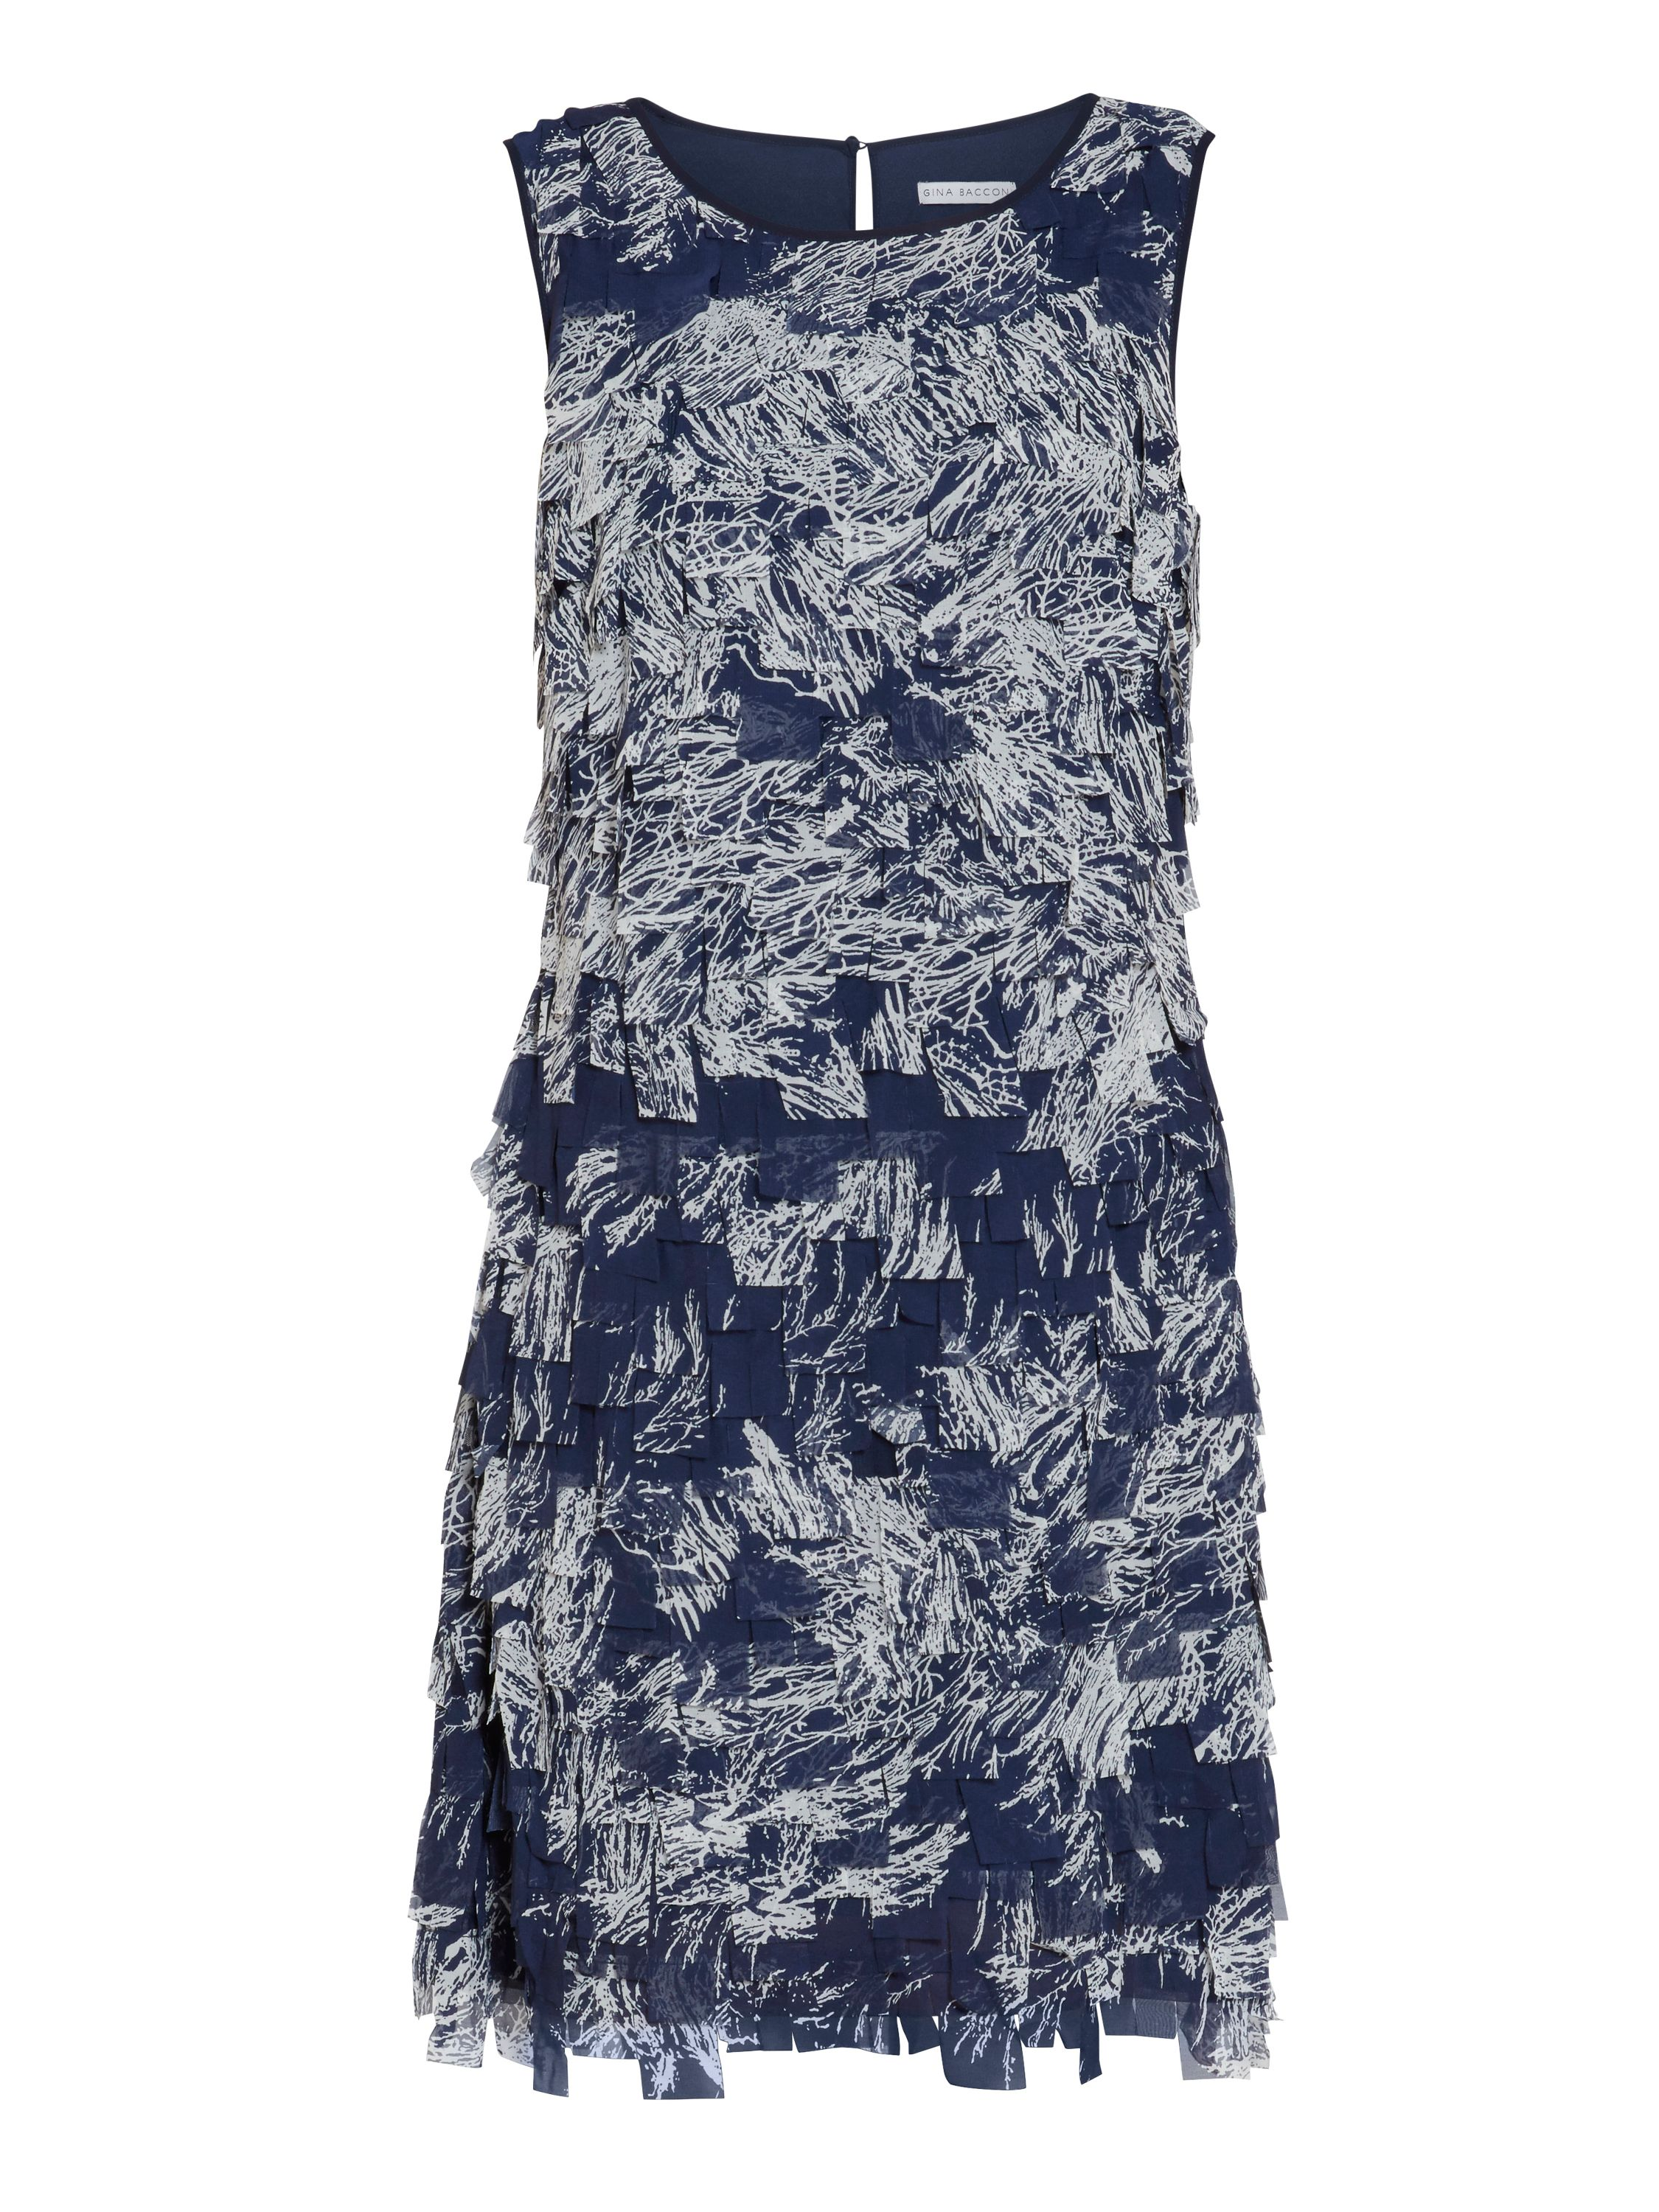 Gina Bacconi Navy off white fringe chiffon dress, Blue